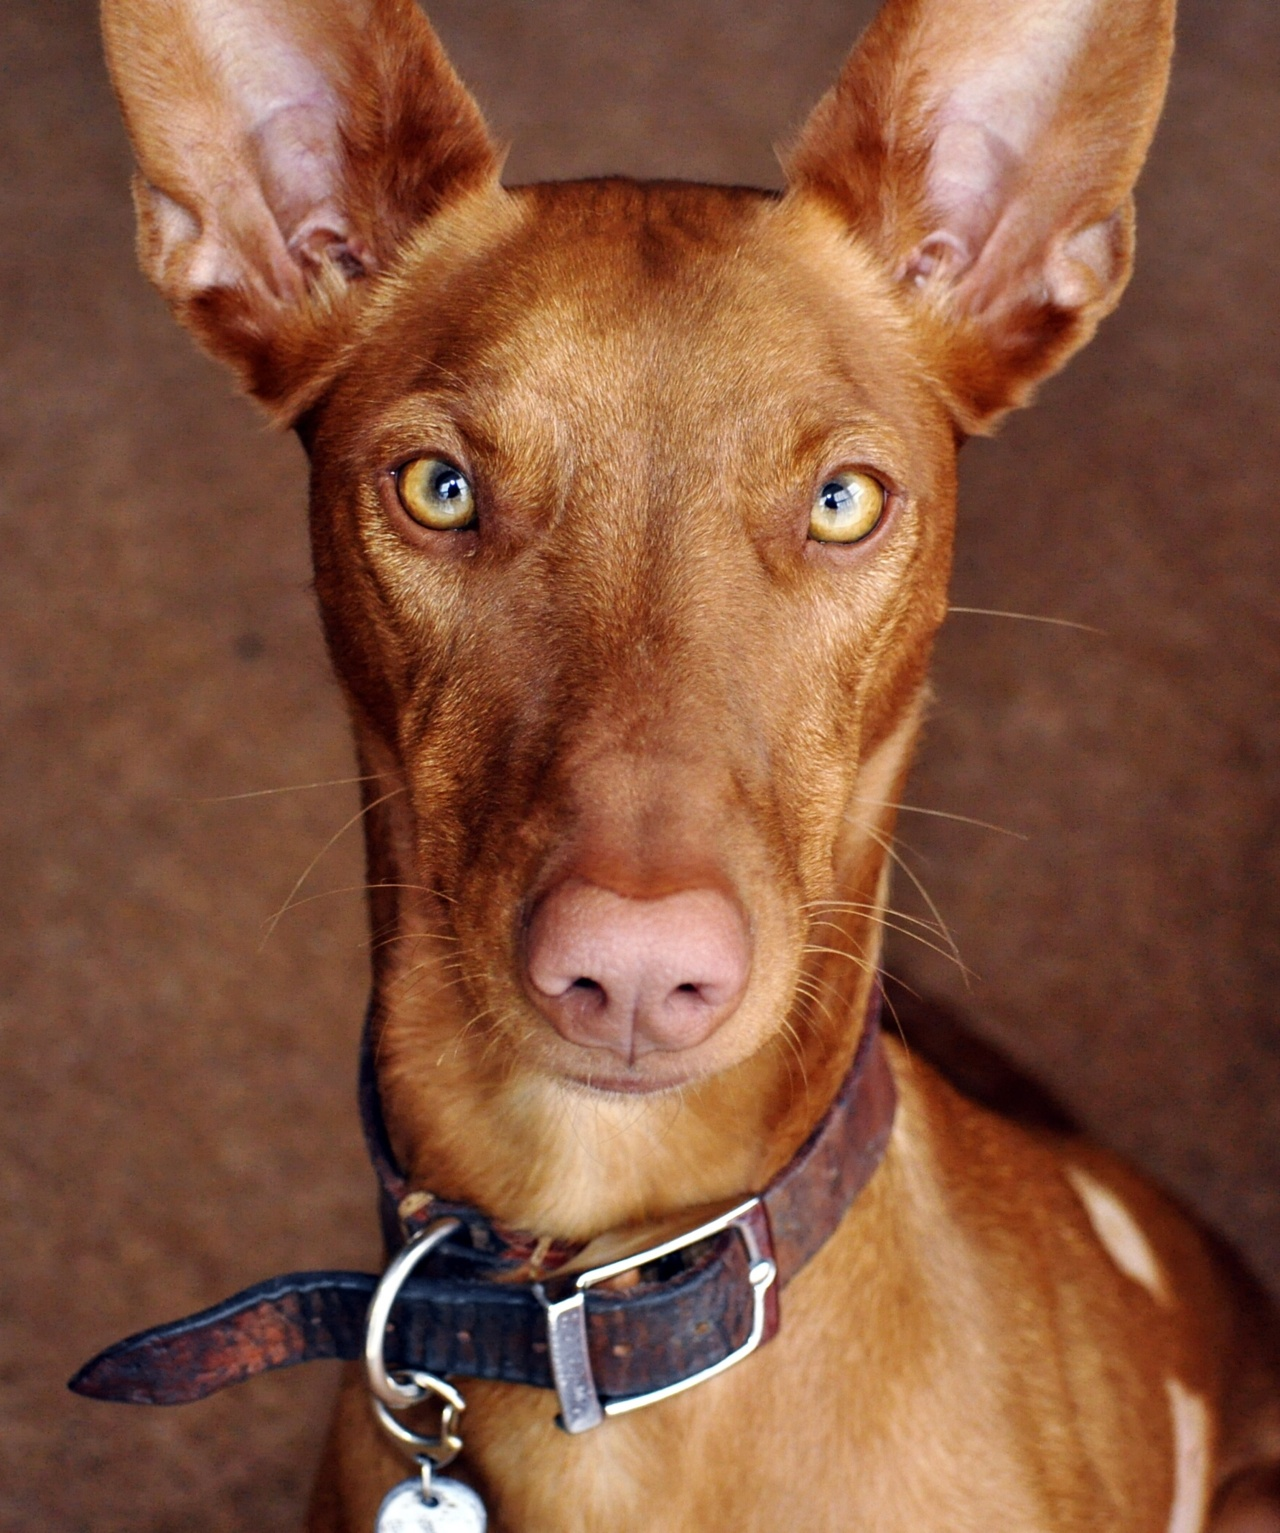 Pharaoh Hound dog face wallpaper